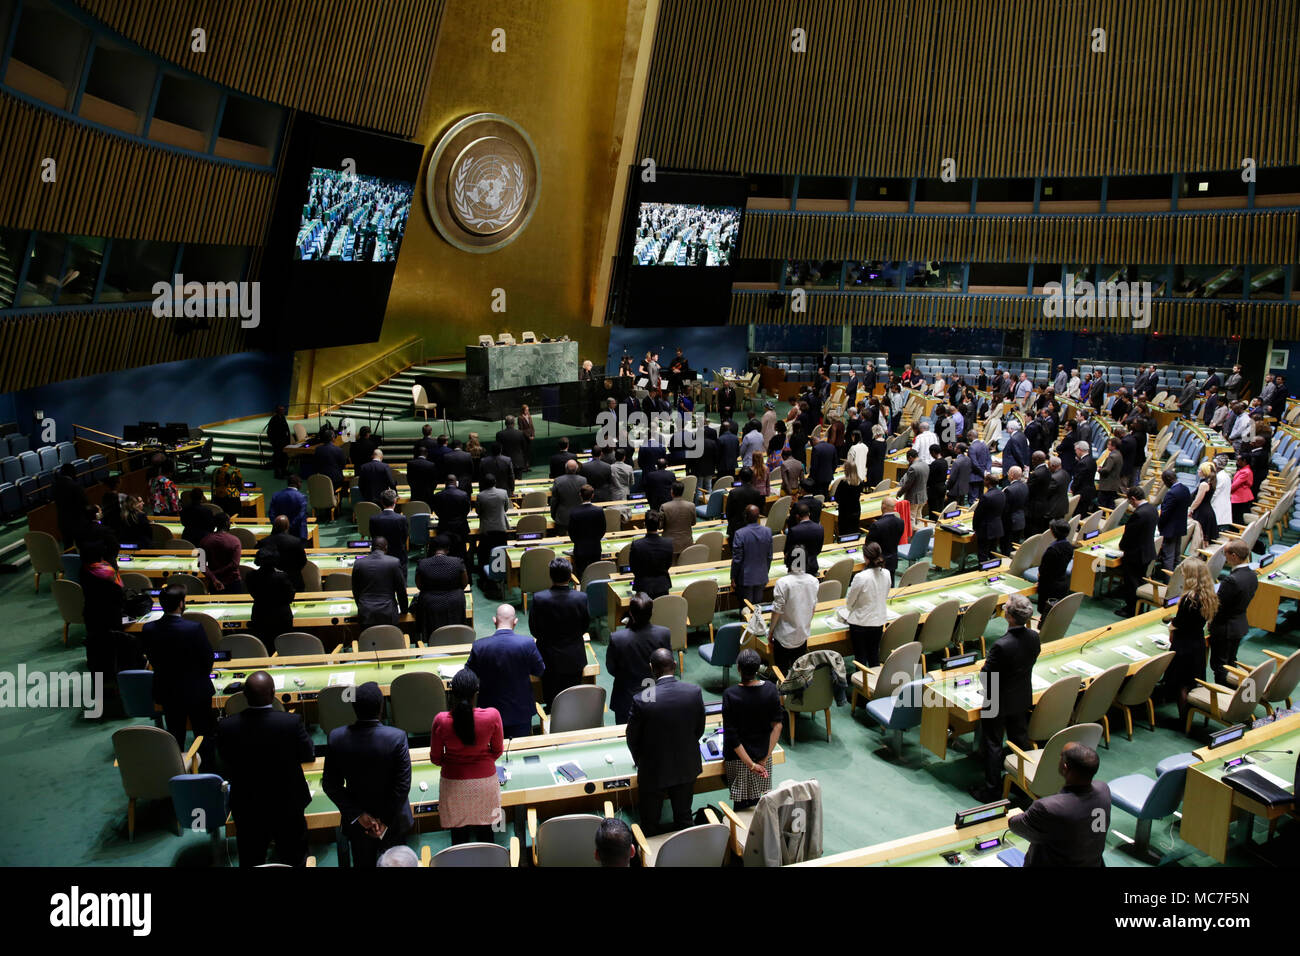 New York, USA, 13 April 2018. People observe a minute of silence during an event to commemorate the international day of reflection on the Rwanda genocide, at the United Nations headquarters in New York, April 13, 2018. Credit: Xinhua/Alamy Live News - Stock Image